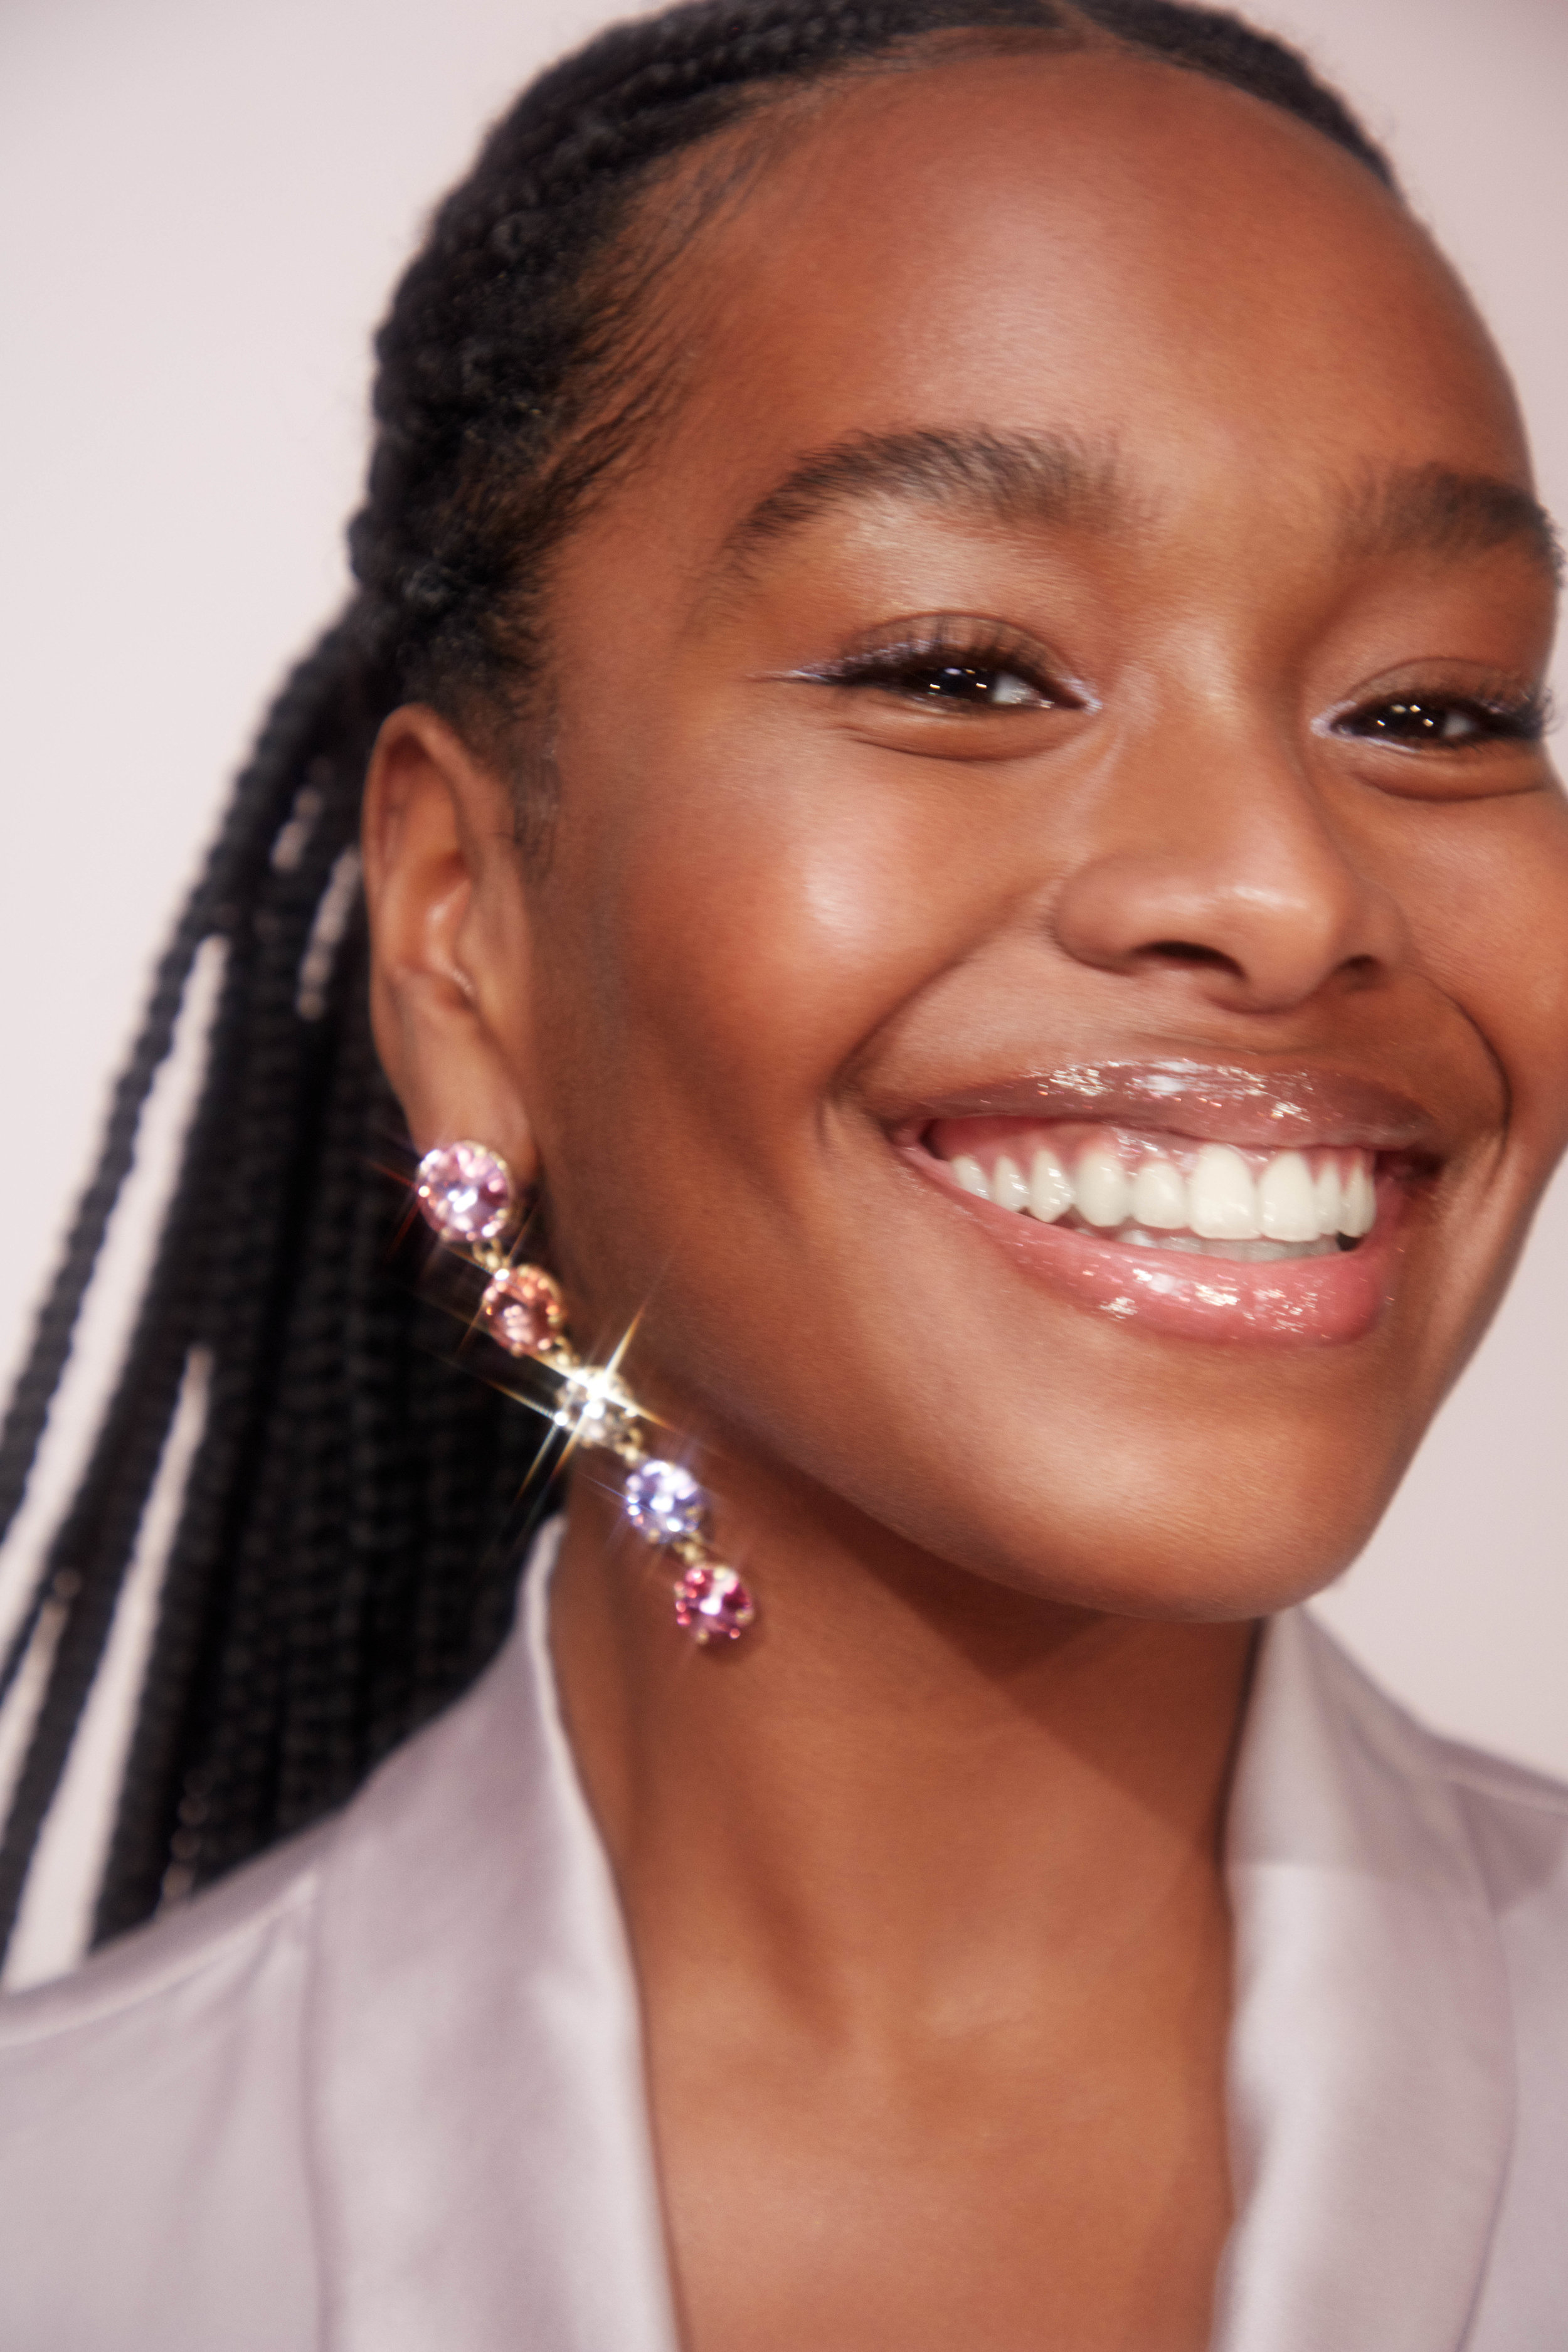 Model Enga ( @enga.d ) in a campaign for Glossier.